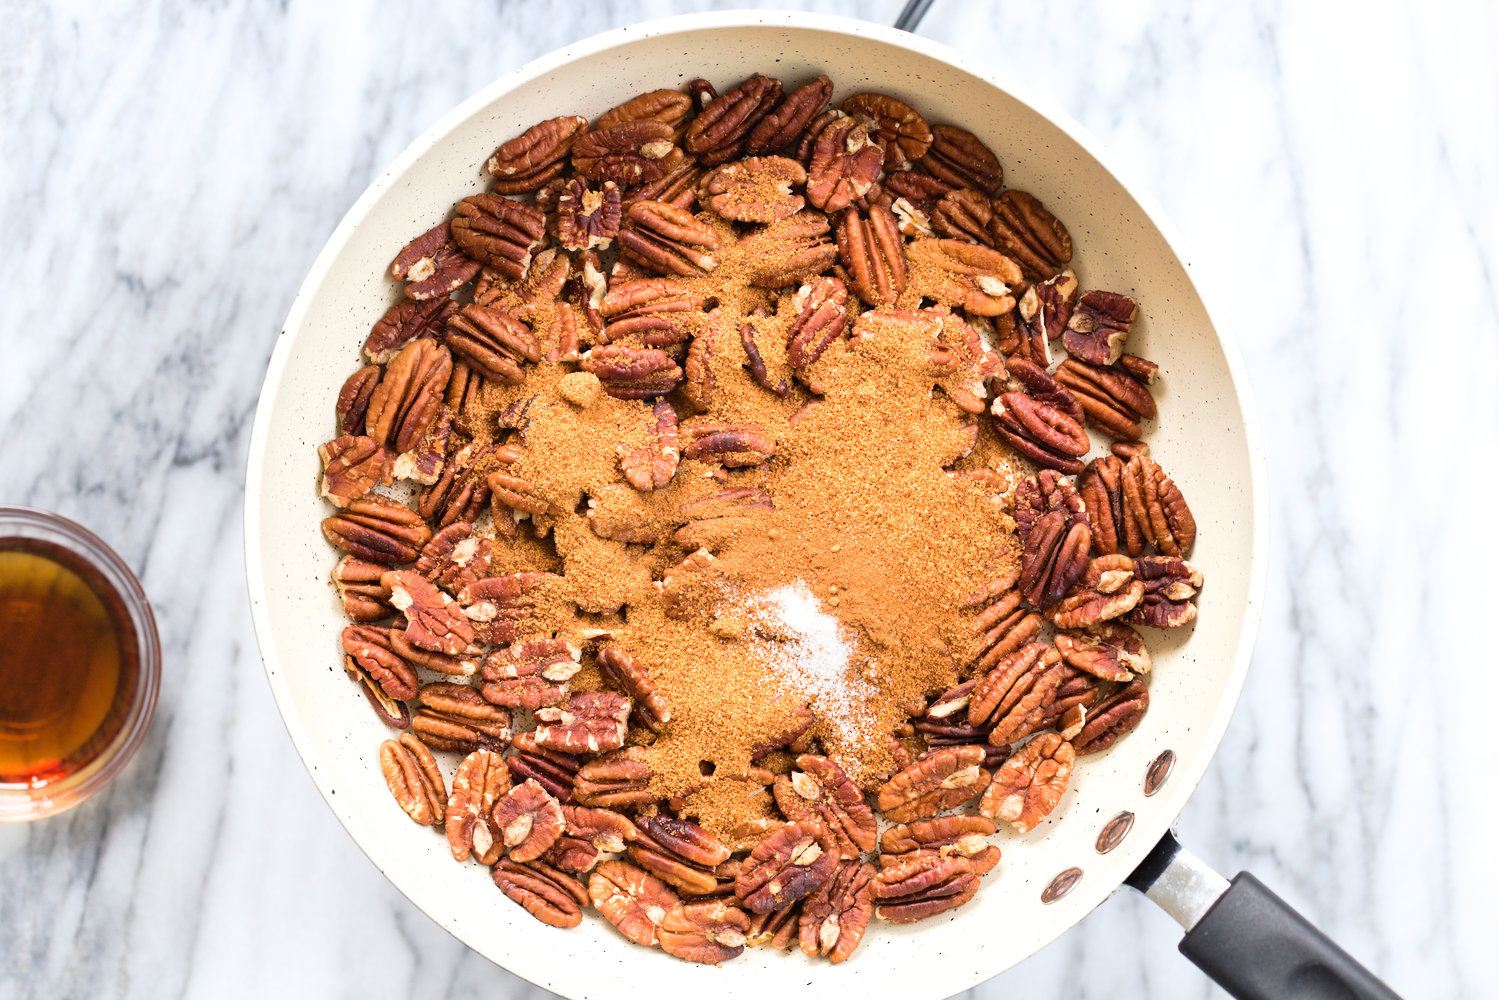 Toasted Pecans, coconut sugar, salt, spice in a white skillet